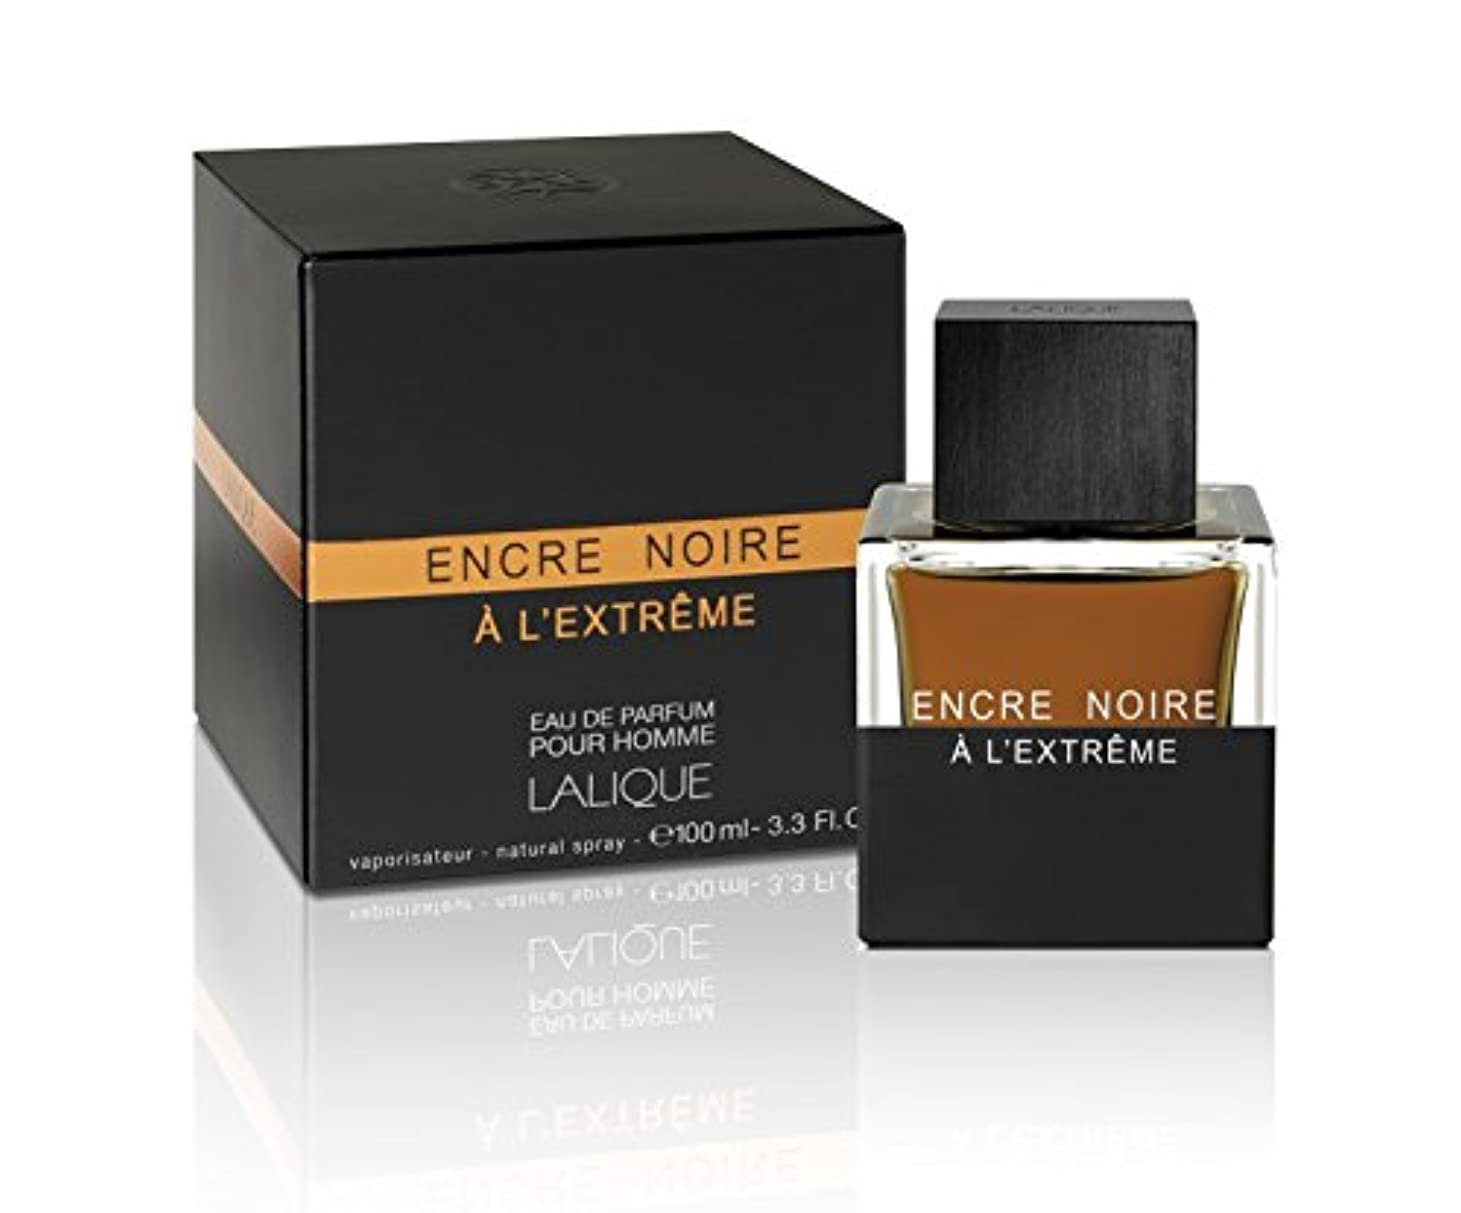 シソーラス古風な中止しますLalique Encre Noire A L'Extreme 100ml/3.3oz Eau De Parfum Perfume Spray for Men